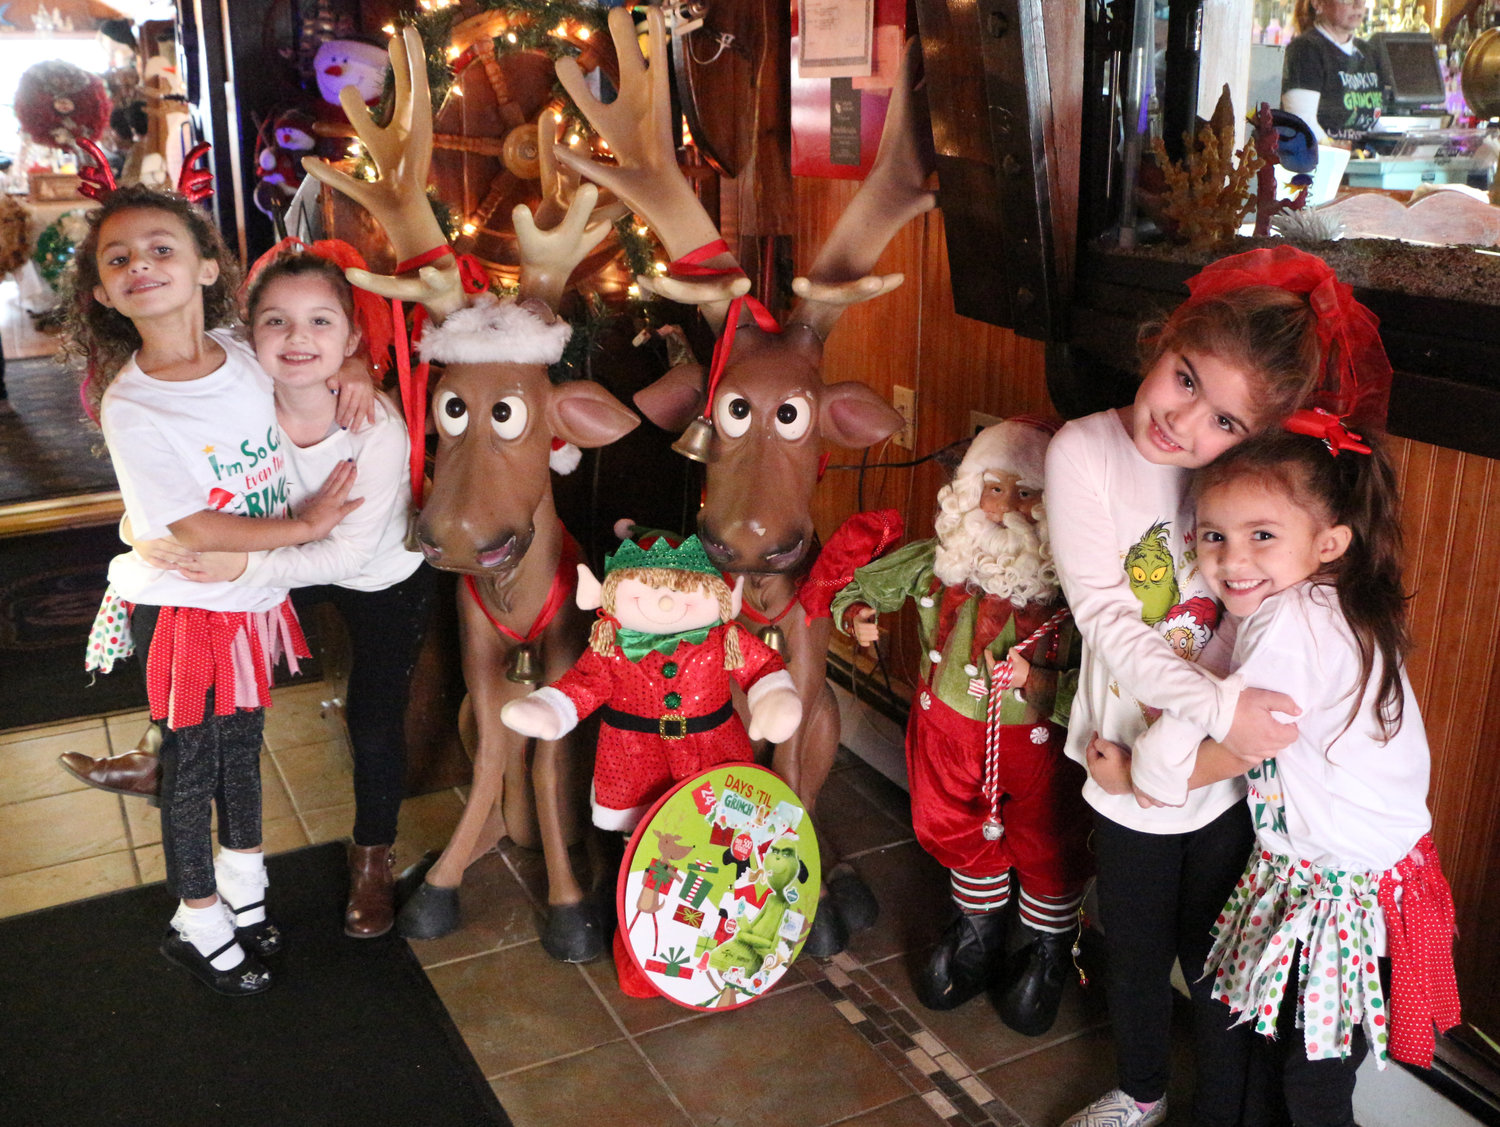 It's a girl's day out at Otto's Sea Grill for Sofia Flores, 6, left, Emma Carroll, 6, Ava Carroll, 7 and Gia Flores, 7 where they planned to meet to the Grinch.